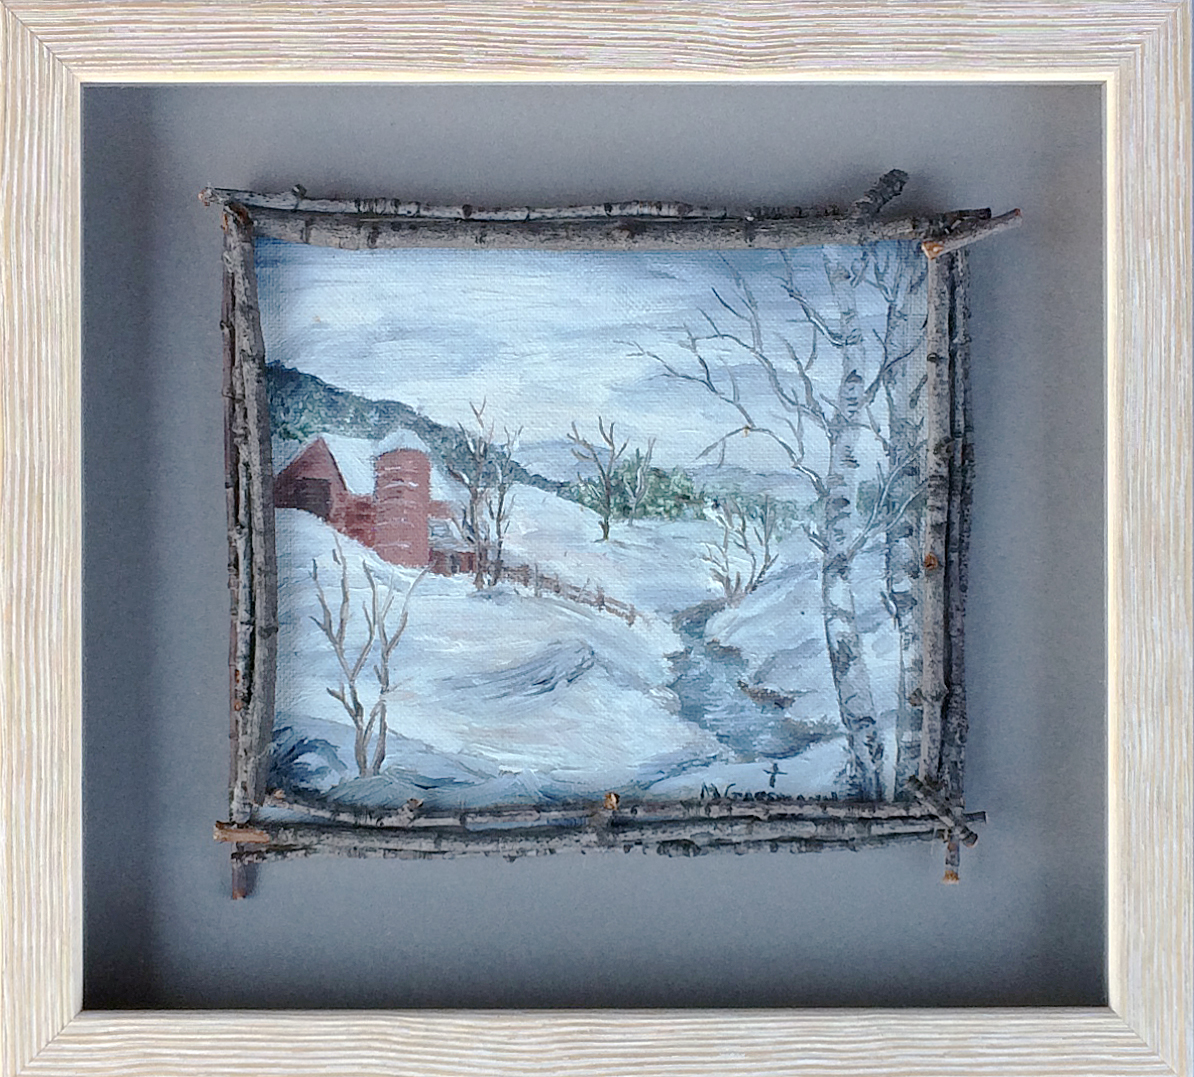 Winter landscape oil painting in artist-made birch twig frame.  To highlight and protect this delicate artwork, it was float mounted on a neutral grey mat board and placed in a simple white shadowbox frame.